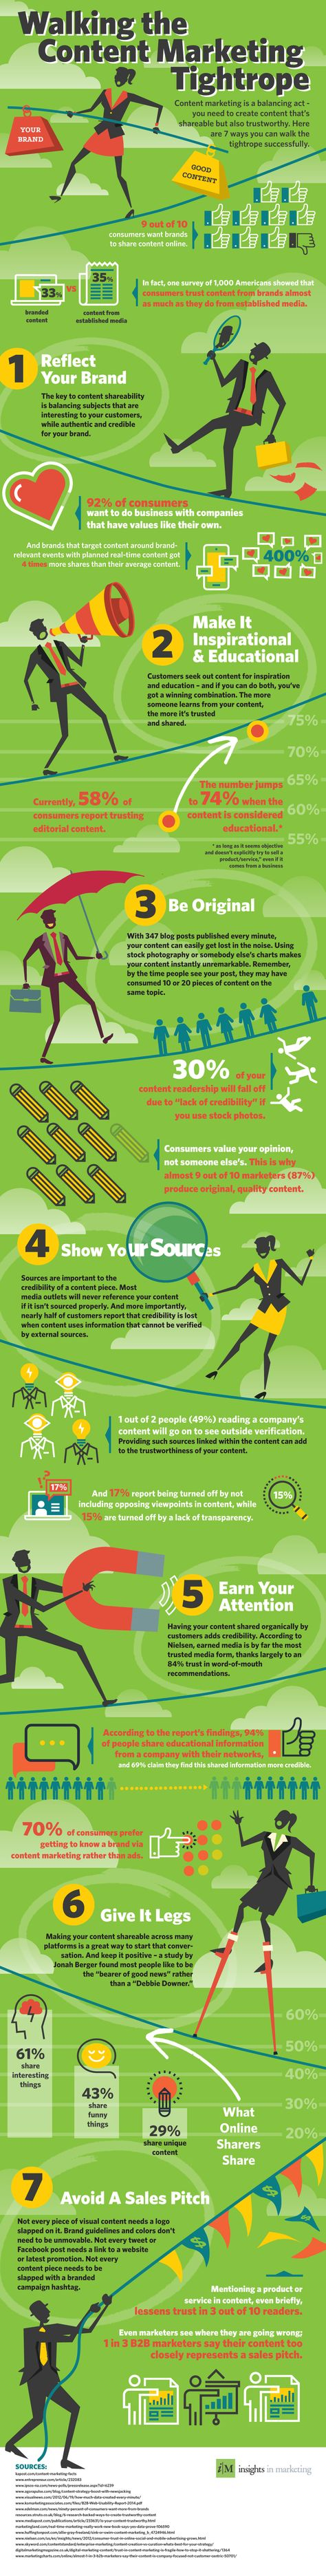 Walking the Content Marketing Tightrope [Infographic]